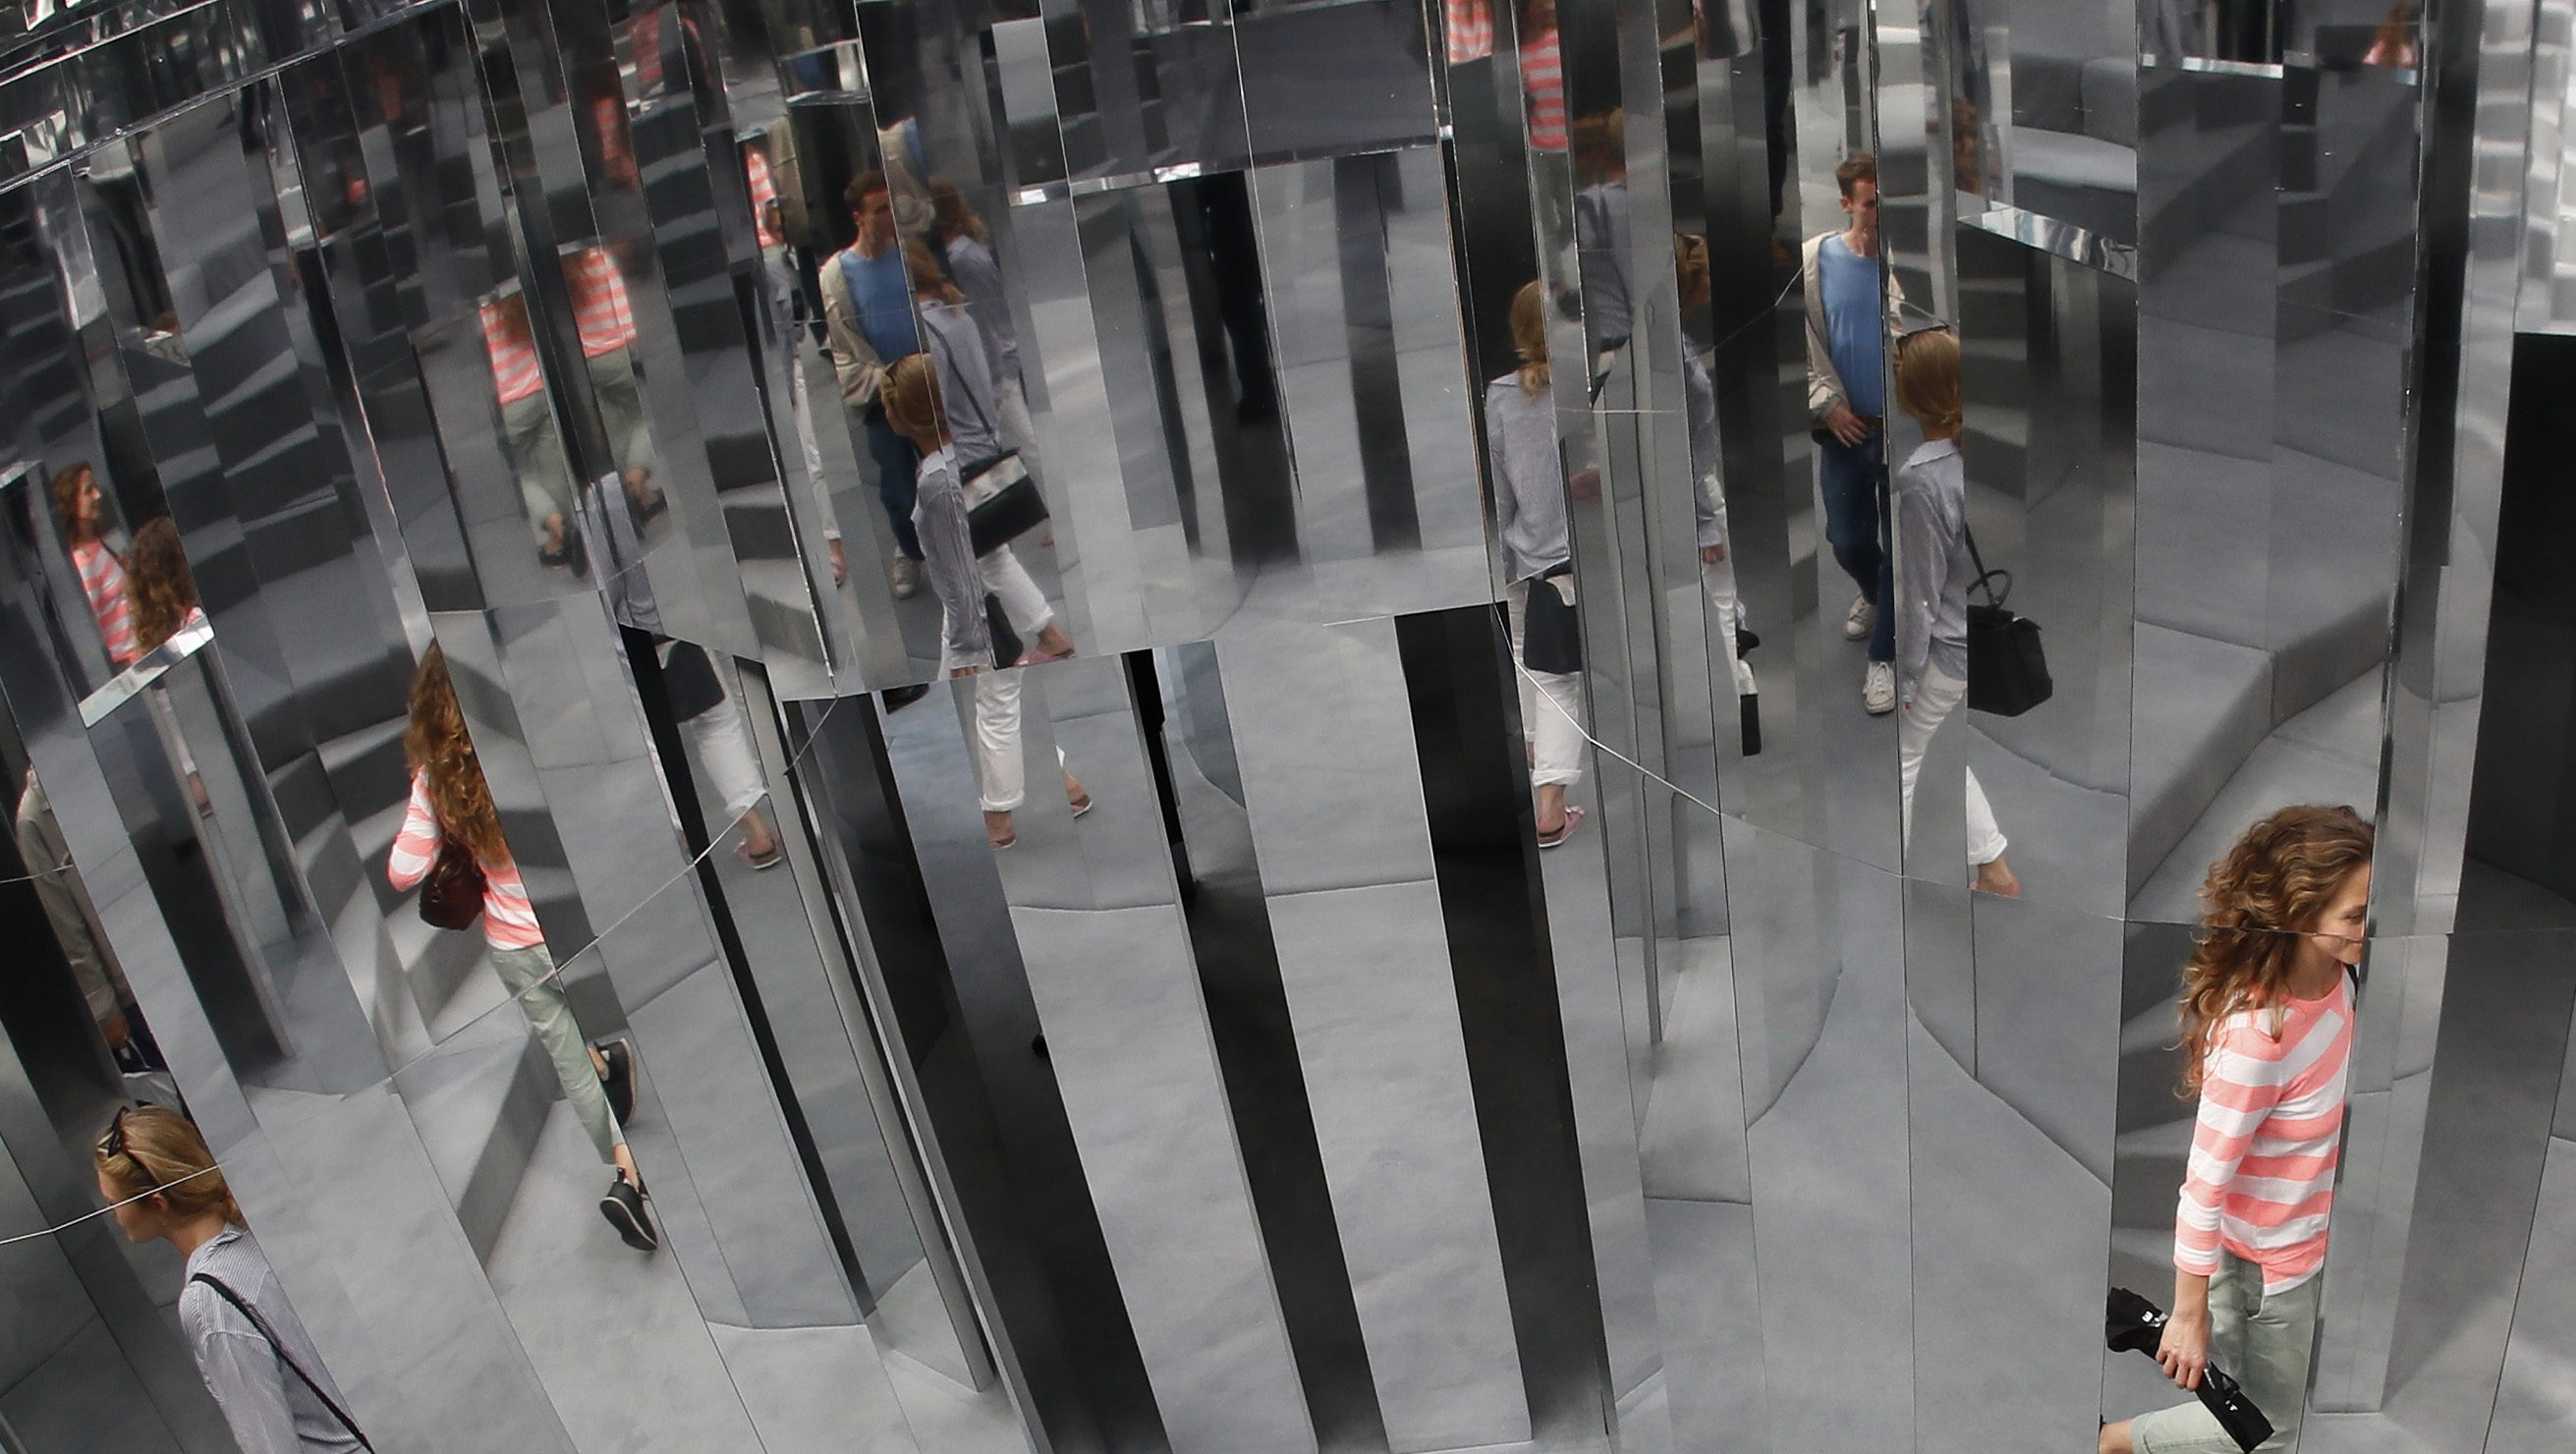 Visitors are reflected in the installation Mirror Maze by artist Es Devlin, at the Copeland Park in Peckham, south London, Britain September 21, 2016.